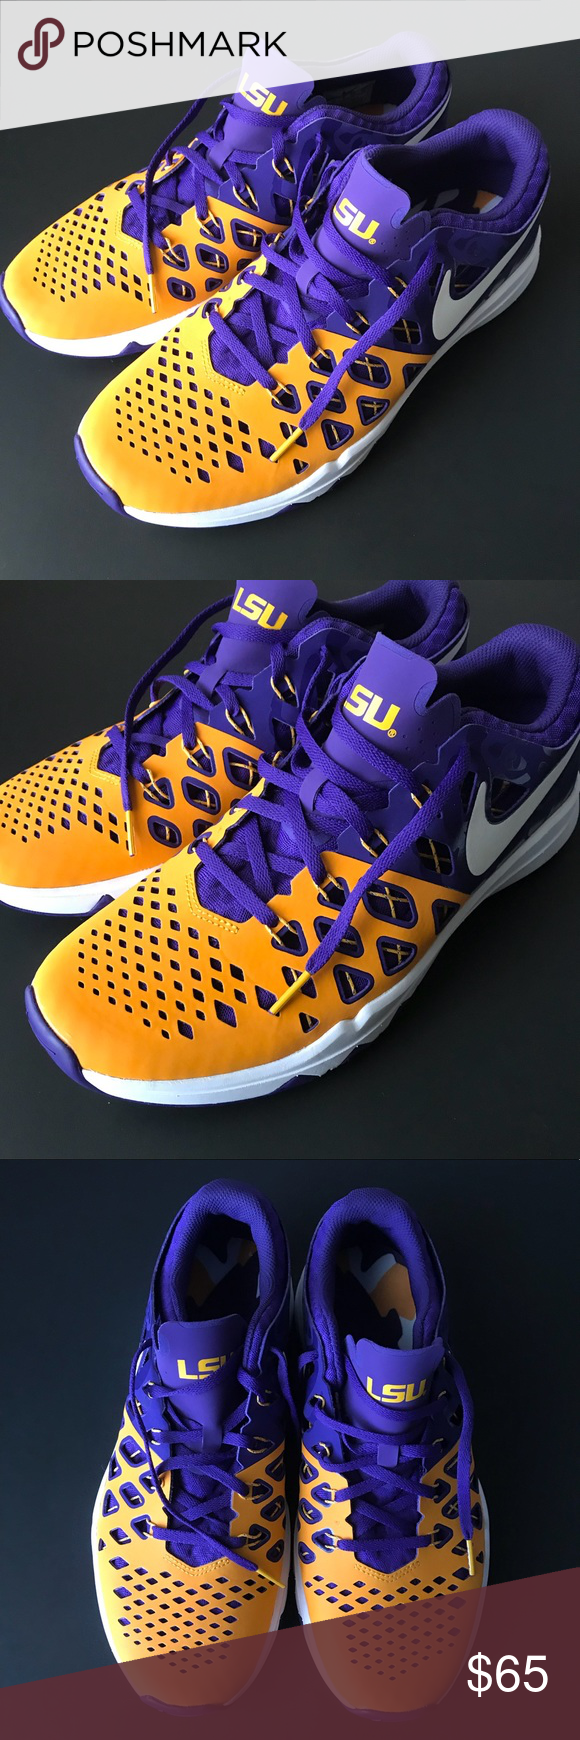 212c62d2cbb199 NIKE LIMITED EDITION LSU TIGERS TRAIN SPEED SHOES Men s 11.5 New Without  Box Nike Shoes Athletic Shoes